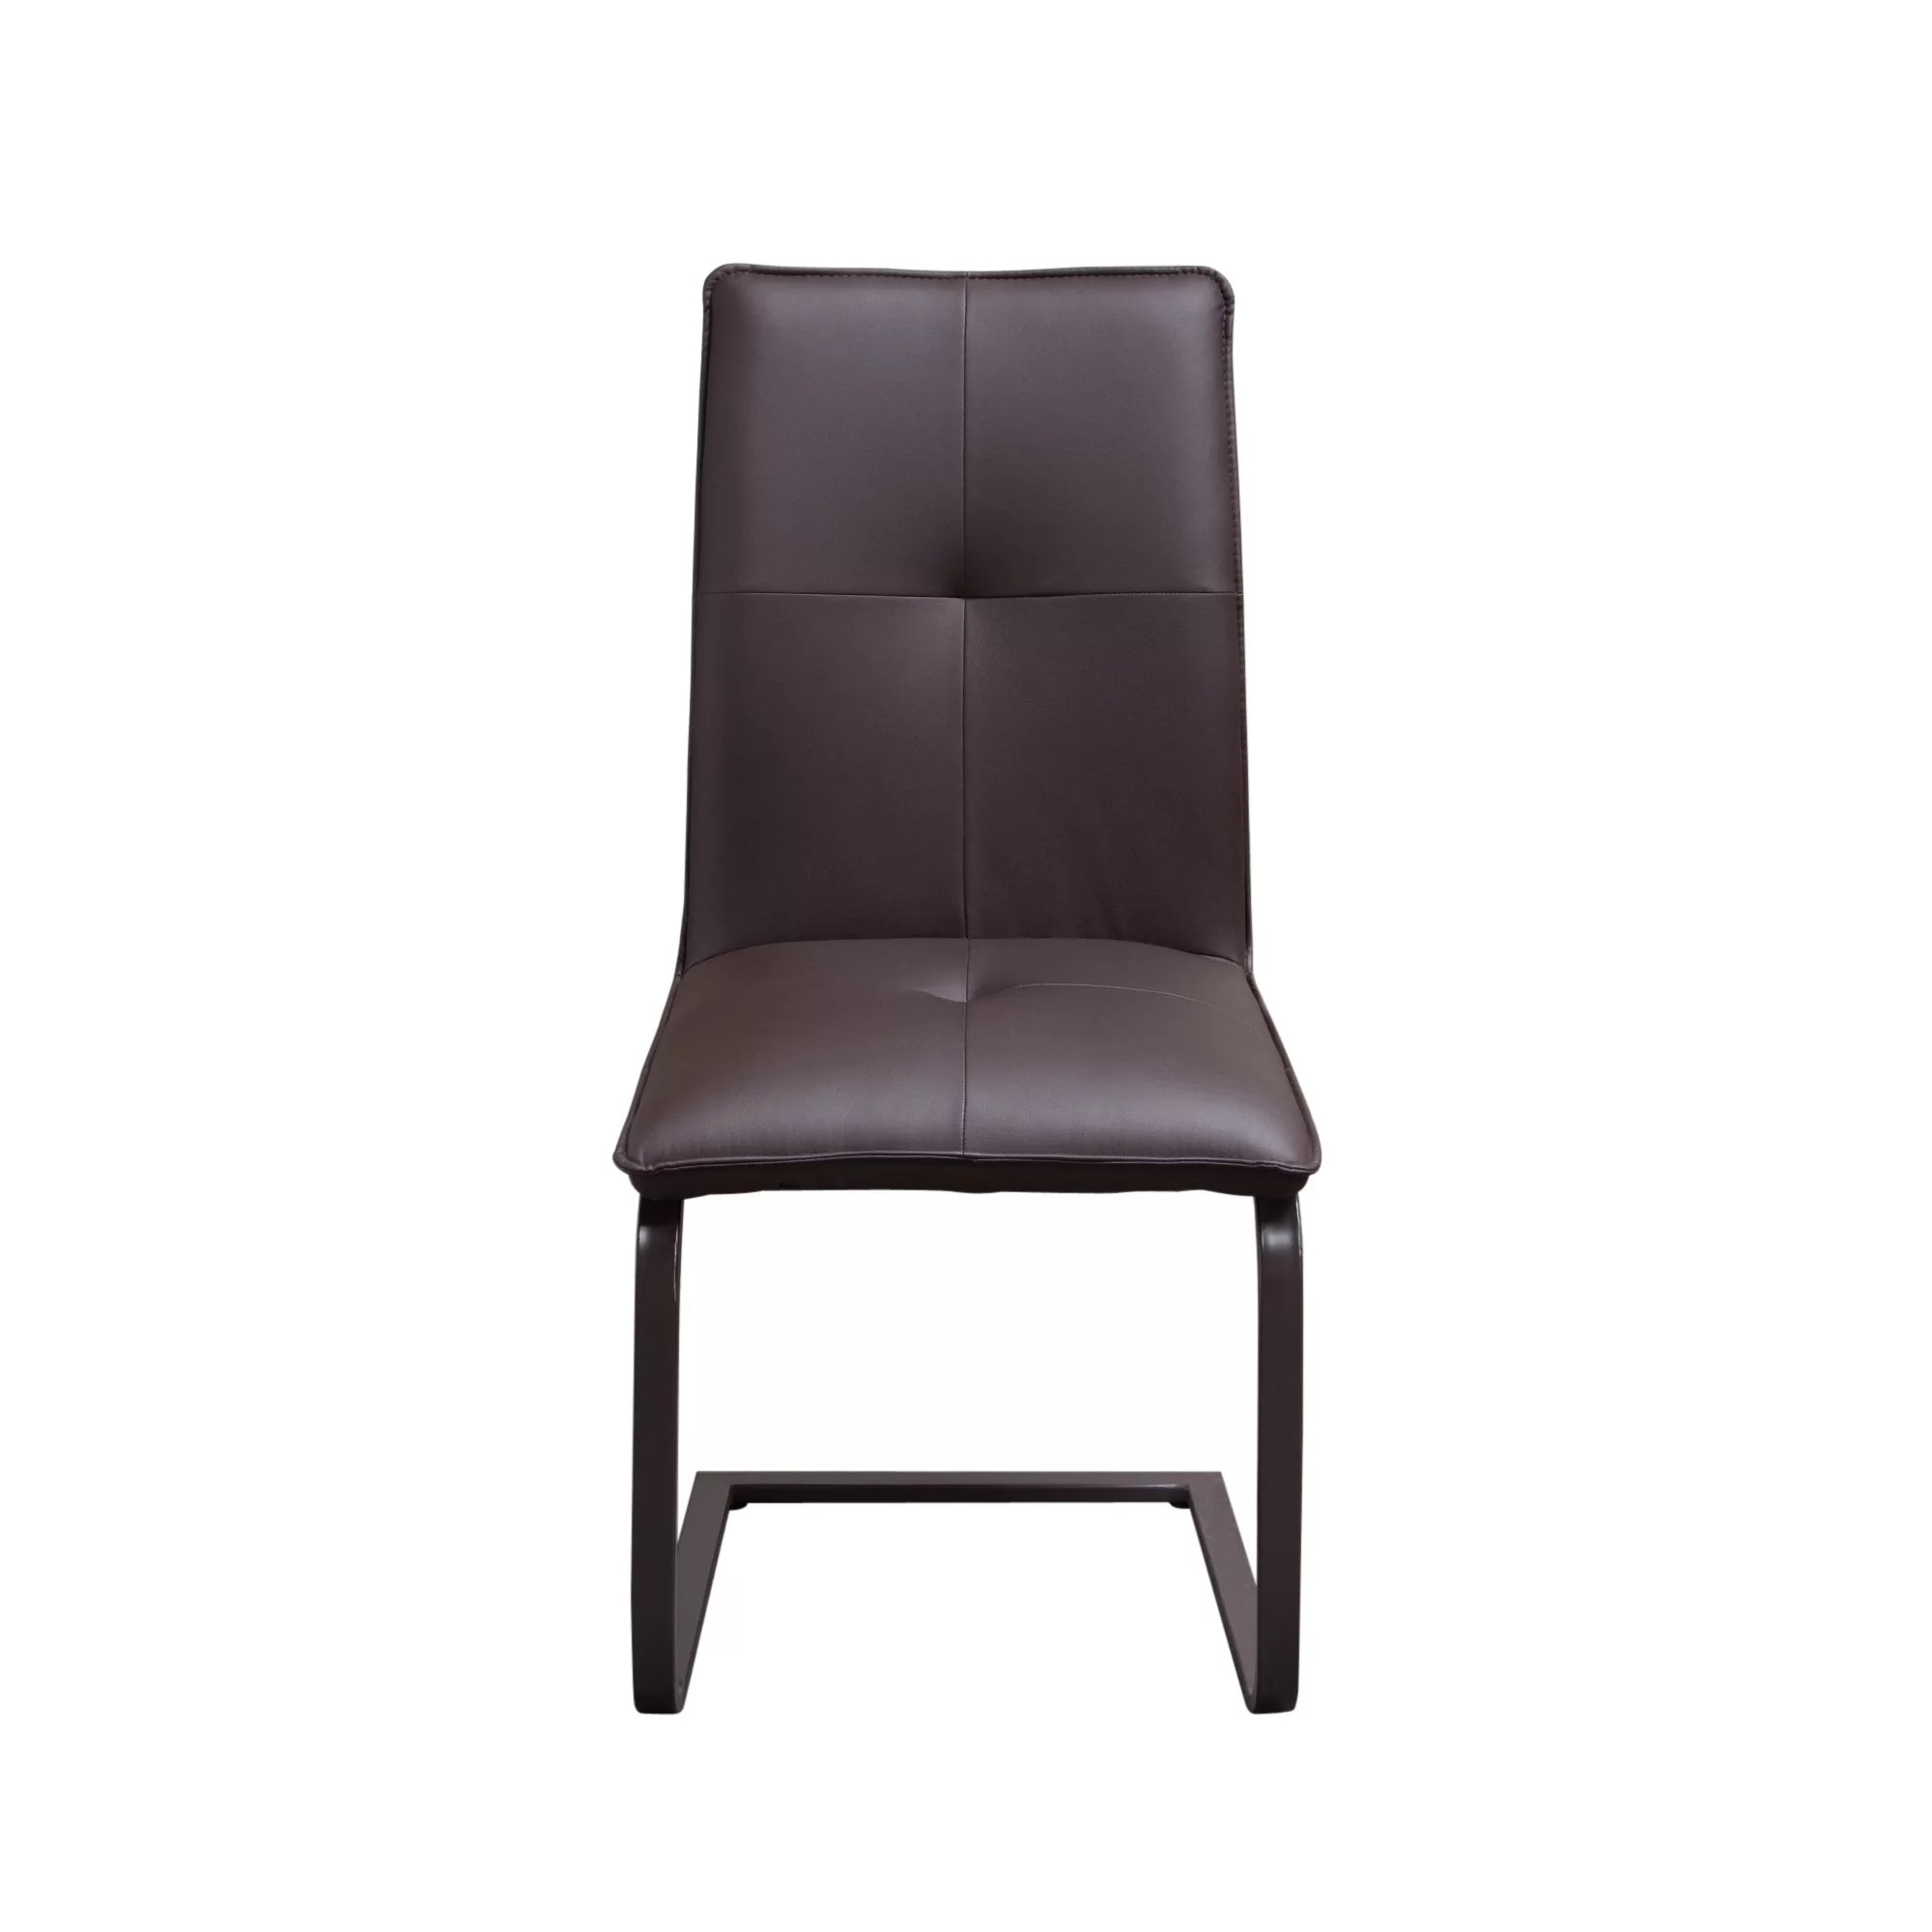 Wayfair Dining Chairs Side Chair Wayfair